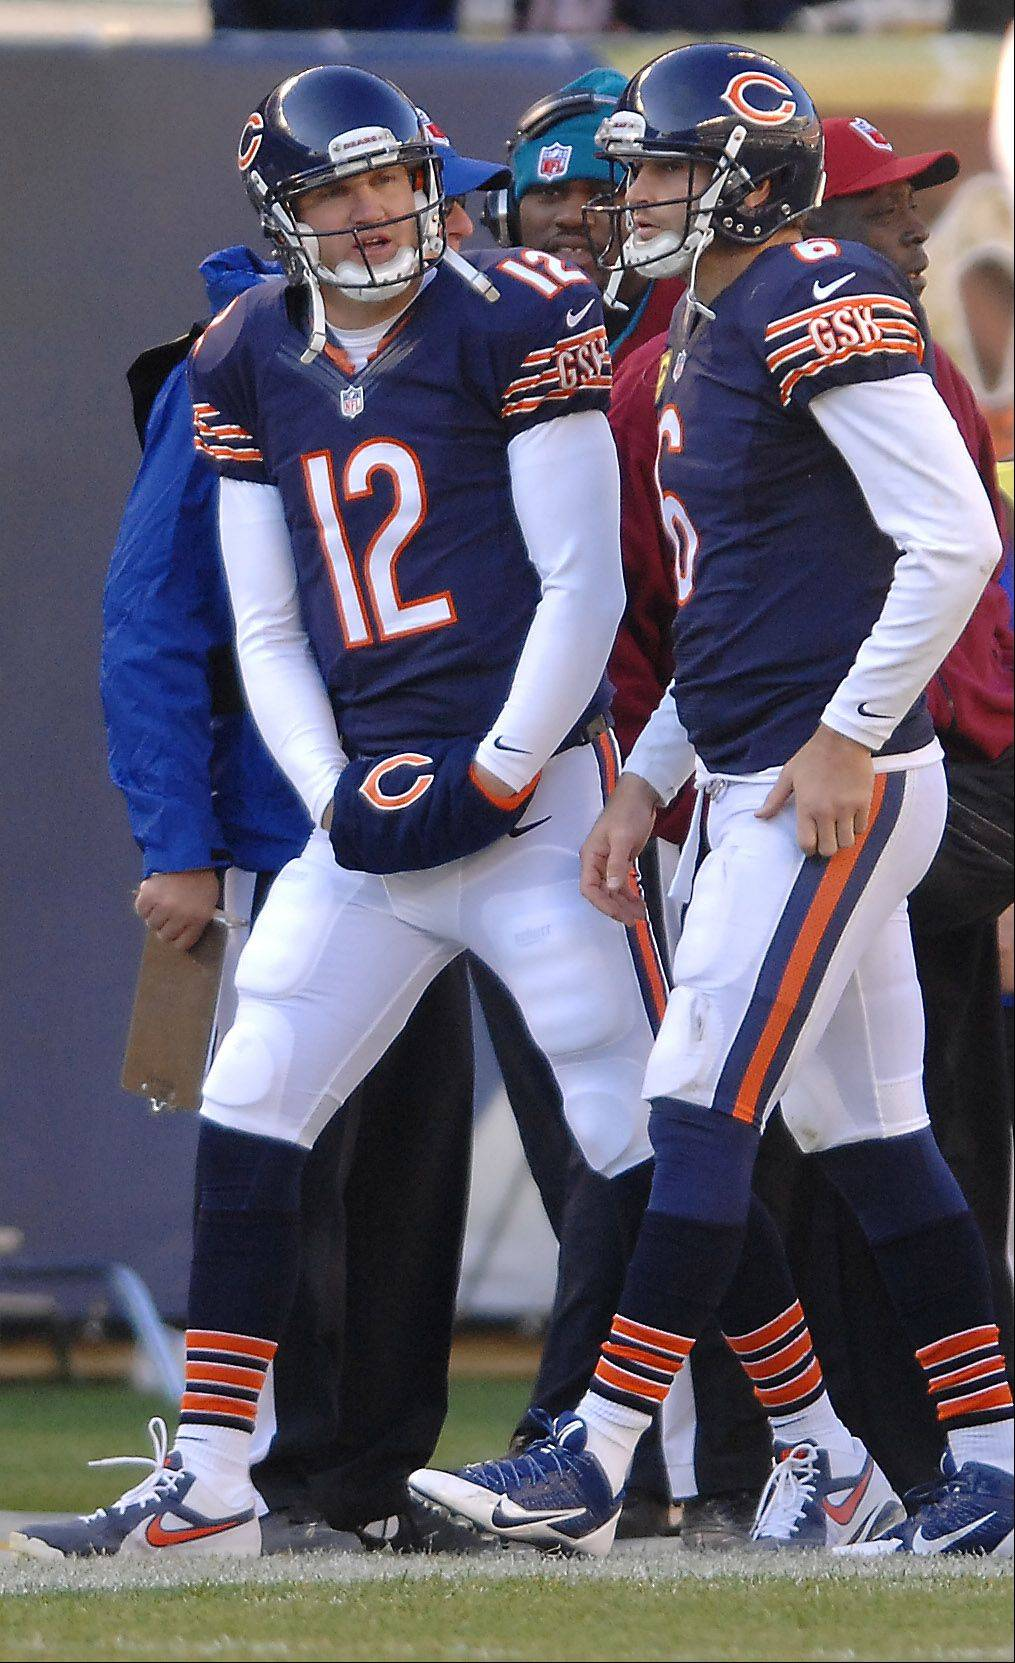 Bears quarterbacks Josh McCown (12) and Jay Cutler confer on the sideline Sunday.